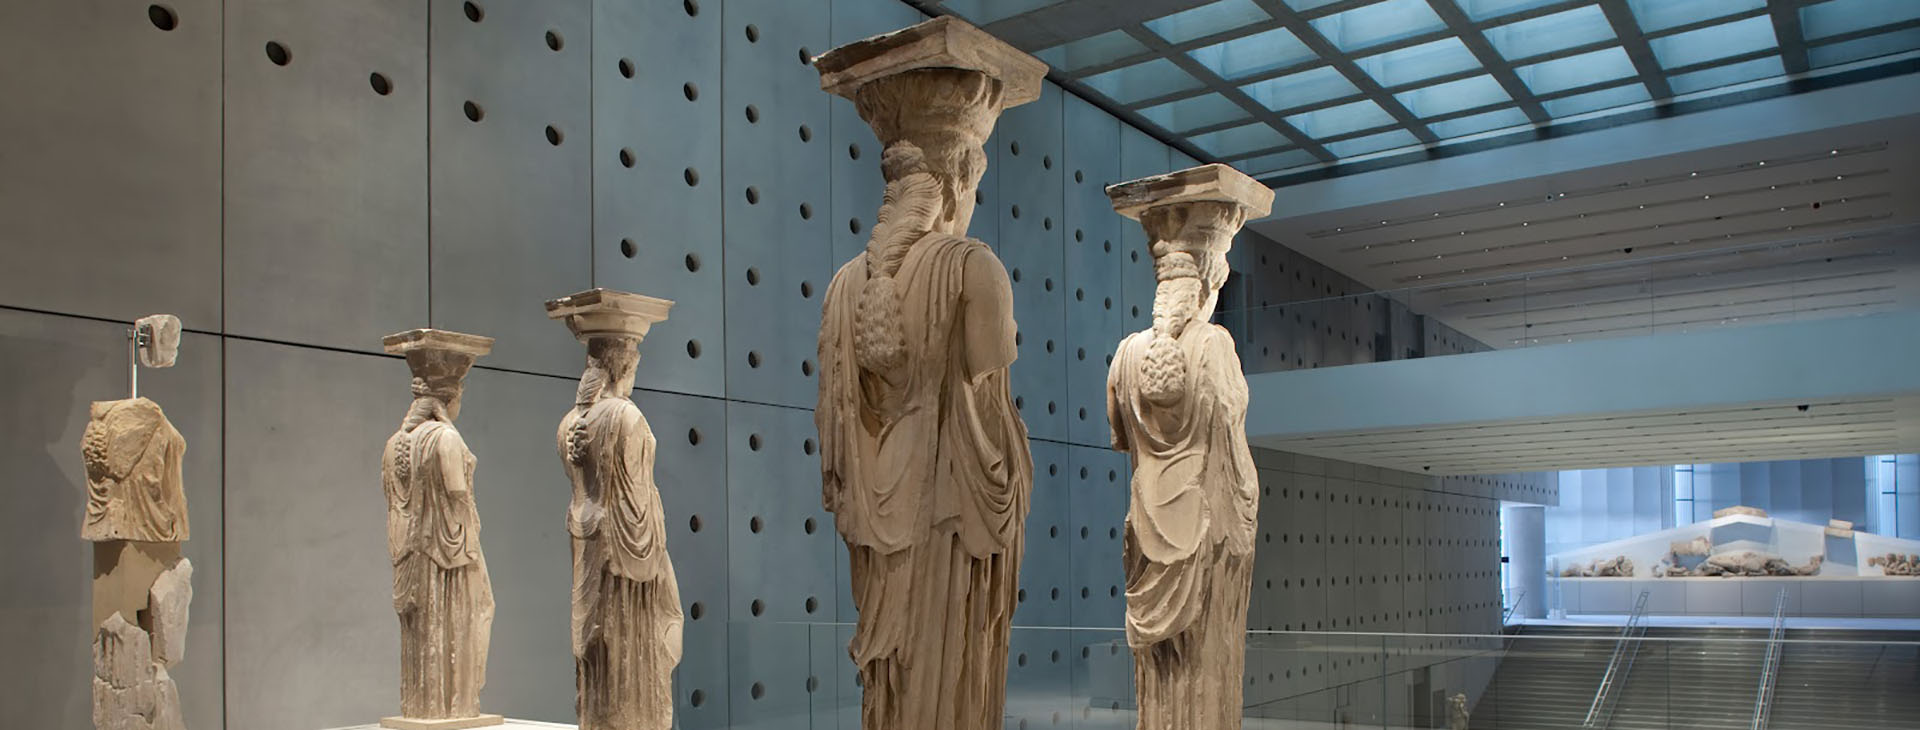 The Caryatids Statues in The Acropolis Museum, Athens